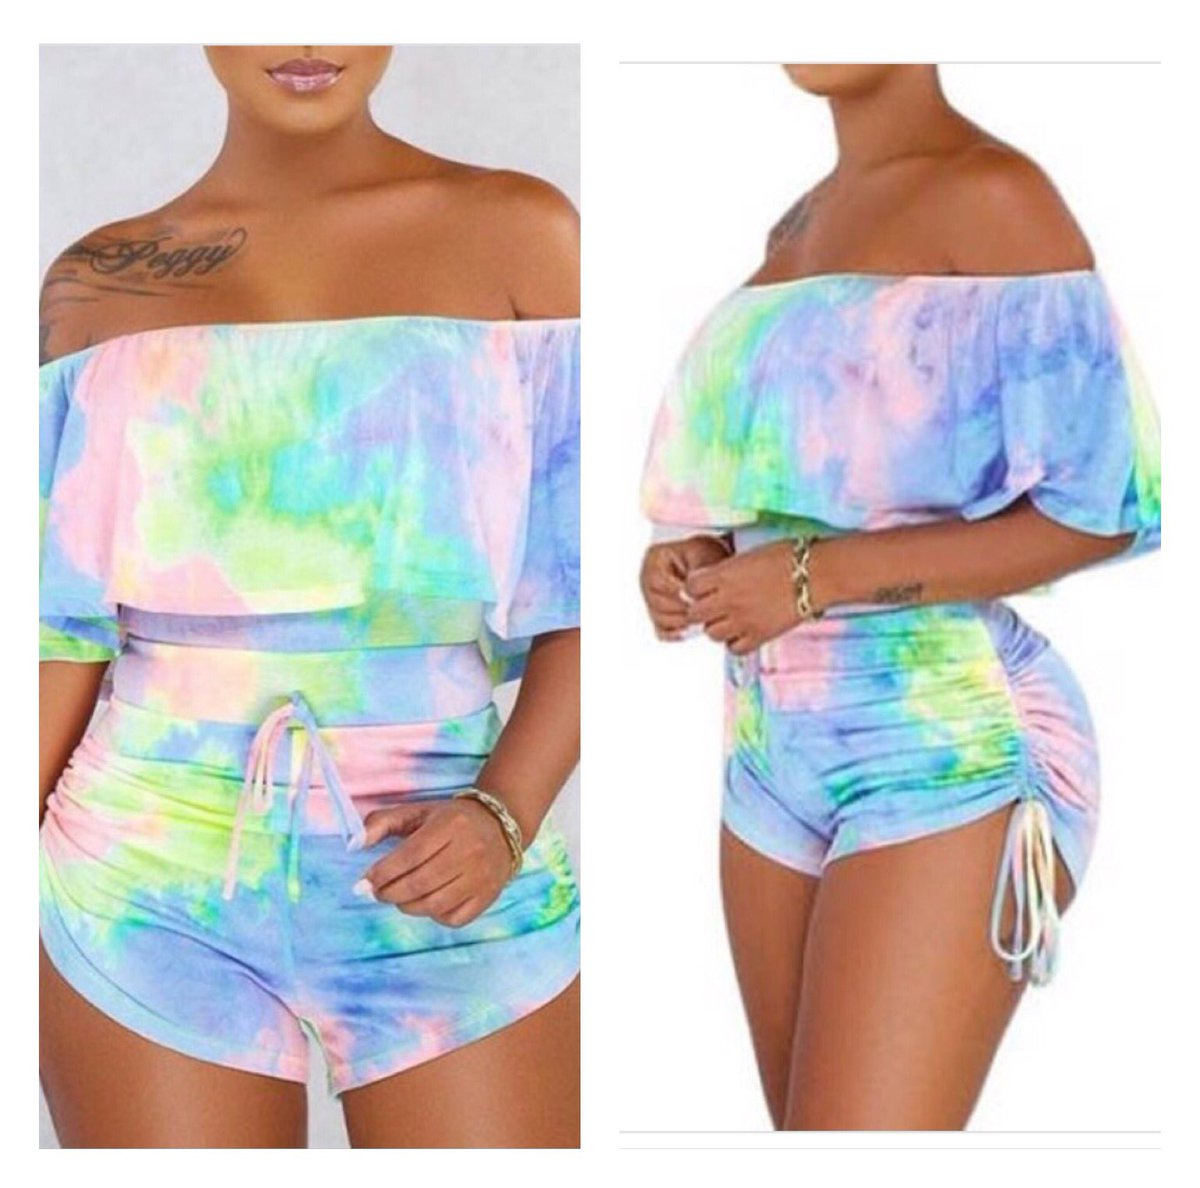 Cotton candy romper  Super Cute .  🦋🦋🦋🦋🦋🦋🦋🦋🦋🦋🦋🦋🦋🦋🦋🦋🦋🦋🦋🦋🦋🦋🦋🦋🦋🦋🦋🦋🦋🦋🦋🦋🦋🦋🦋🦋#onlineboutique  #summeroutfit #smallbusiness #fashionstyle #fashion #weekendvibes #spring #shoponline #runningerrands #fashionista #shopnow #lookcute